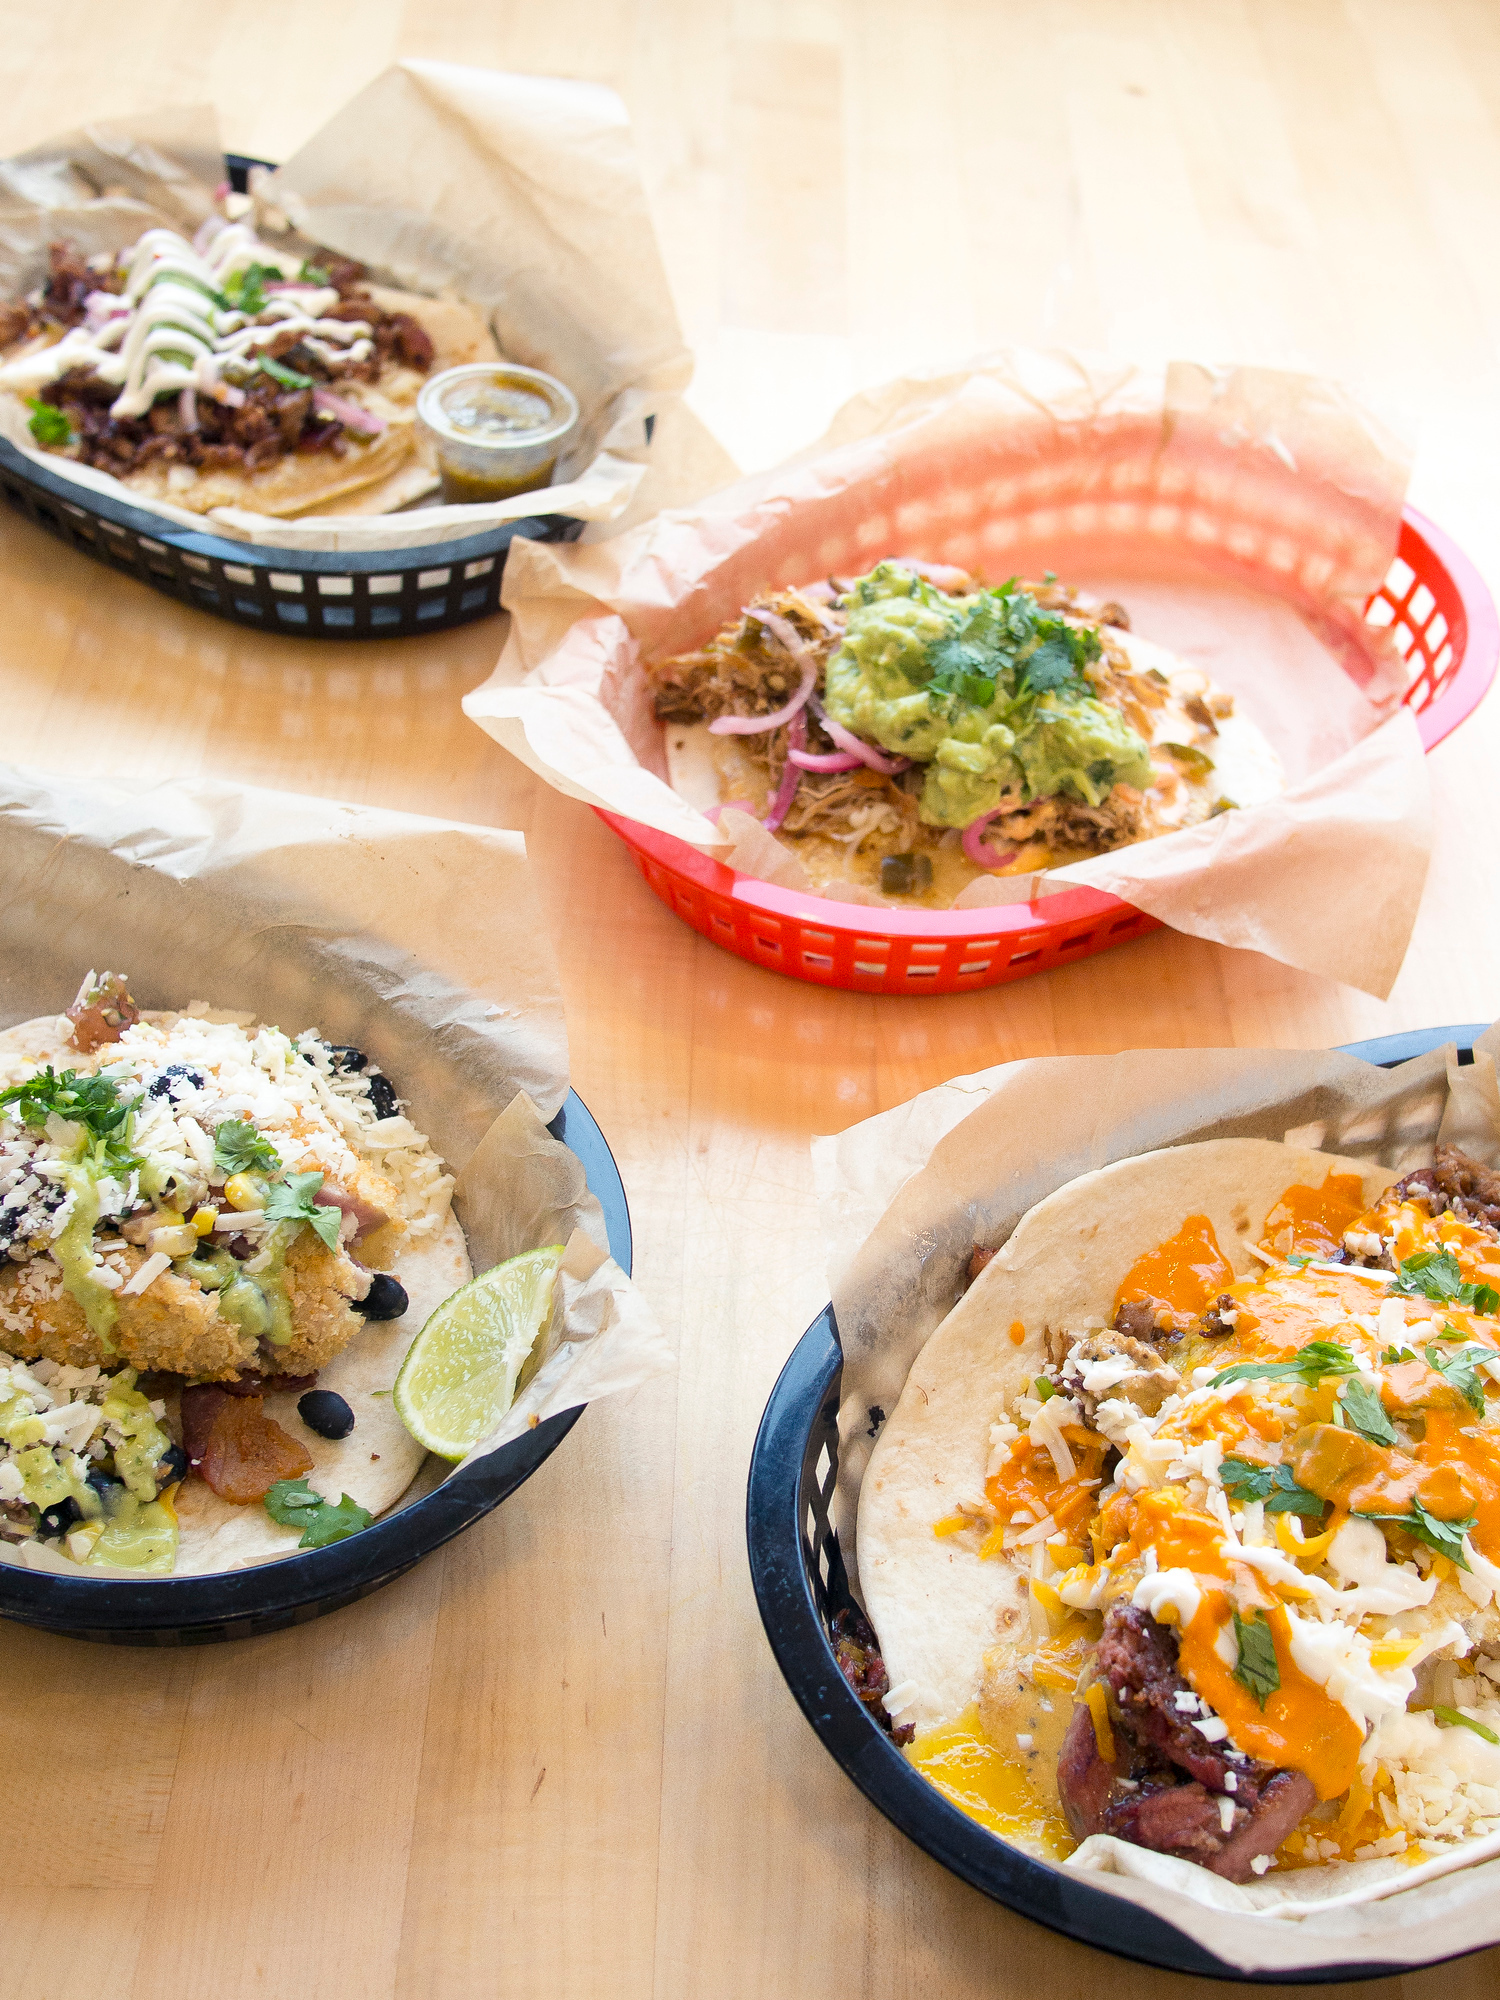 Torchy's secret menu - discover the seven secret tacos at Torchy's Tacos.